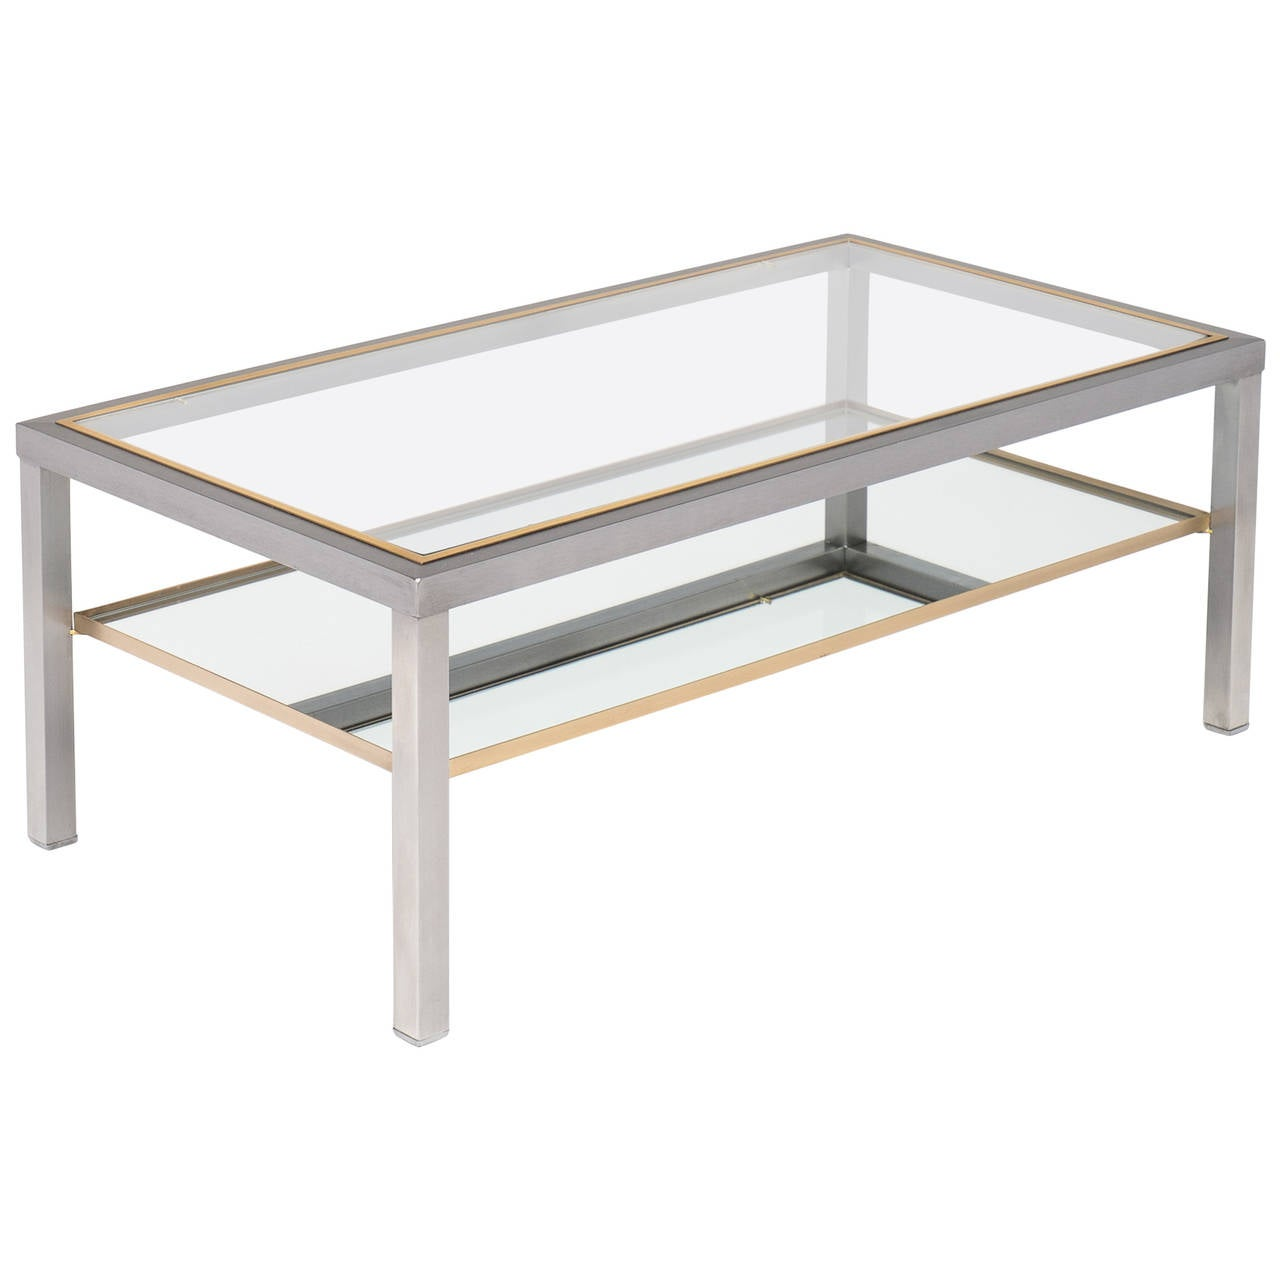 French Vintage Modernist Coffee Table